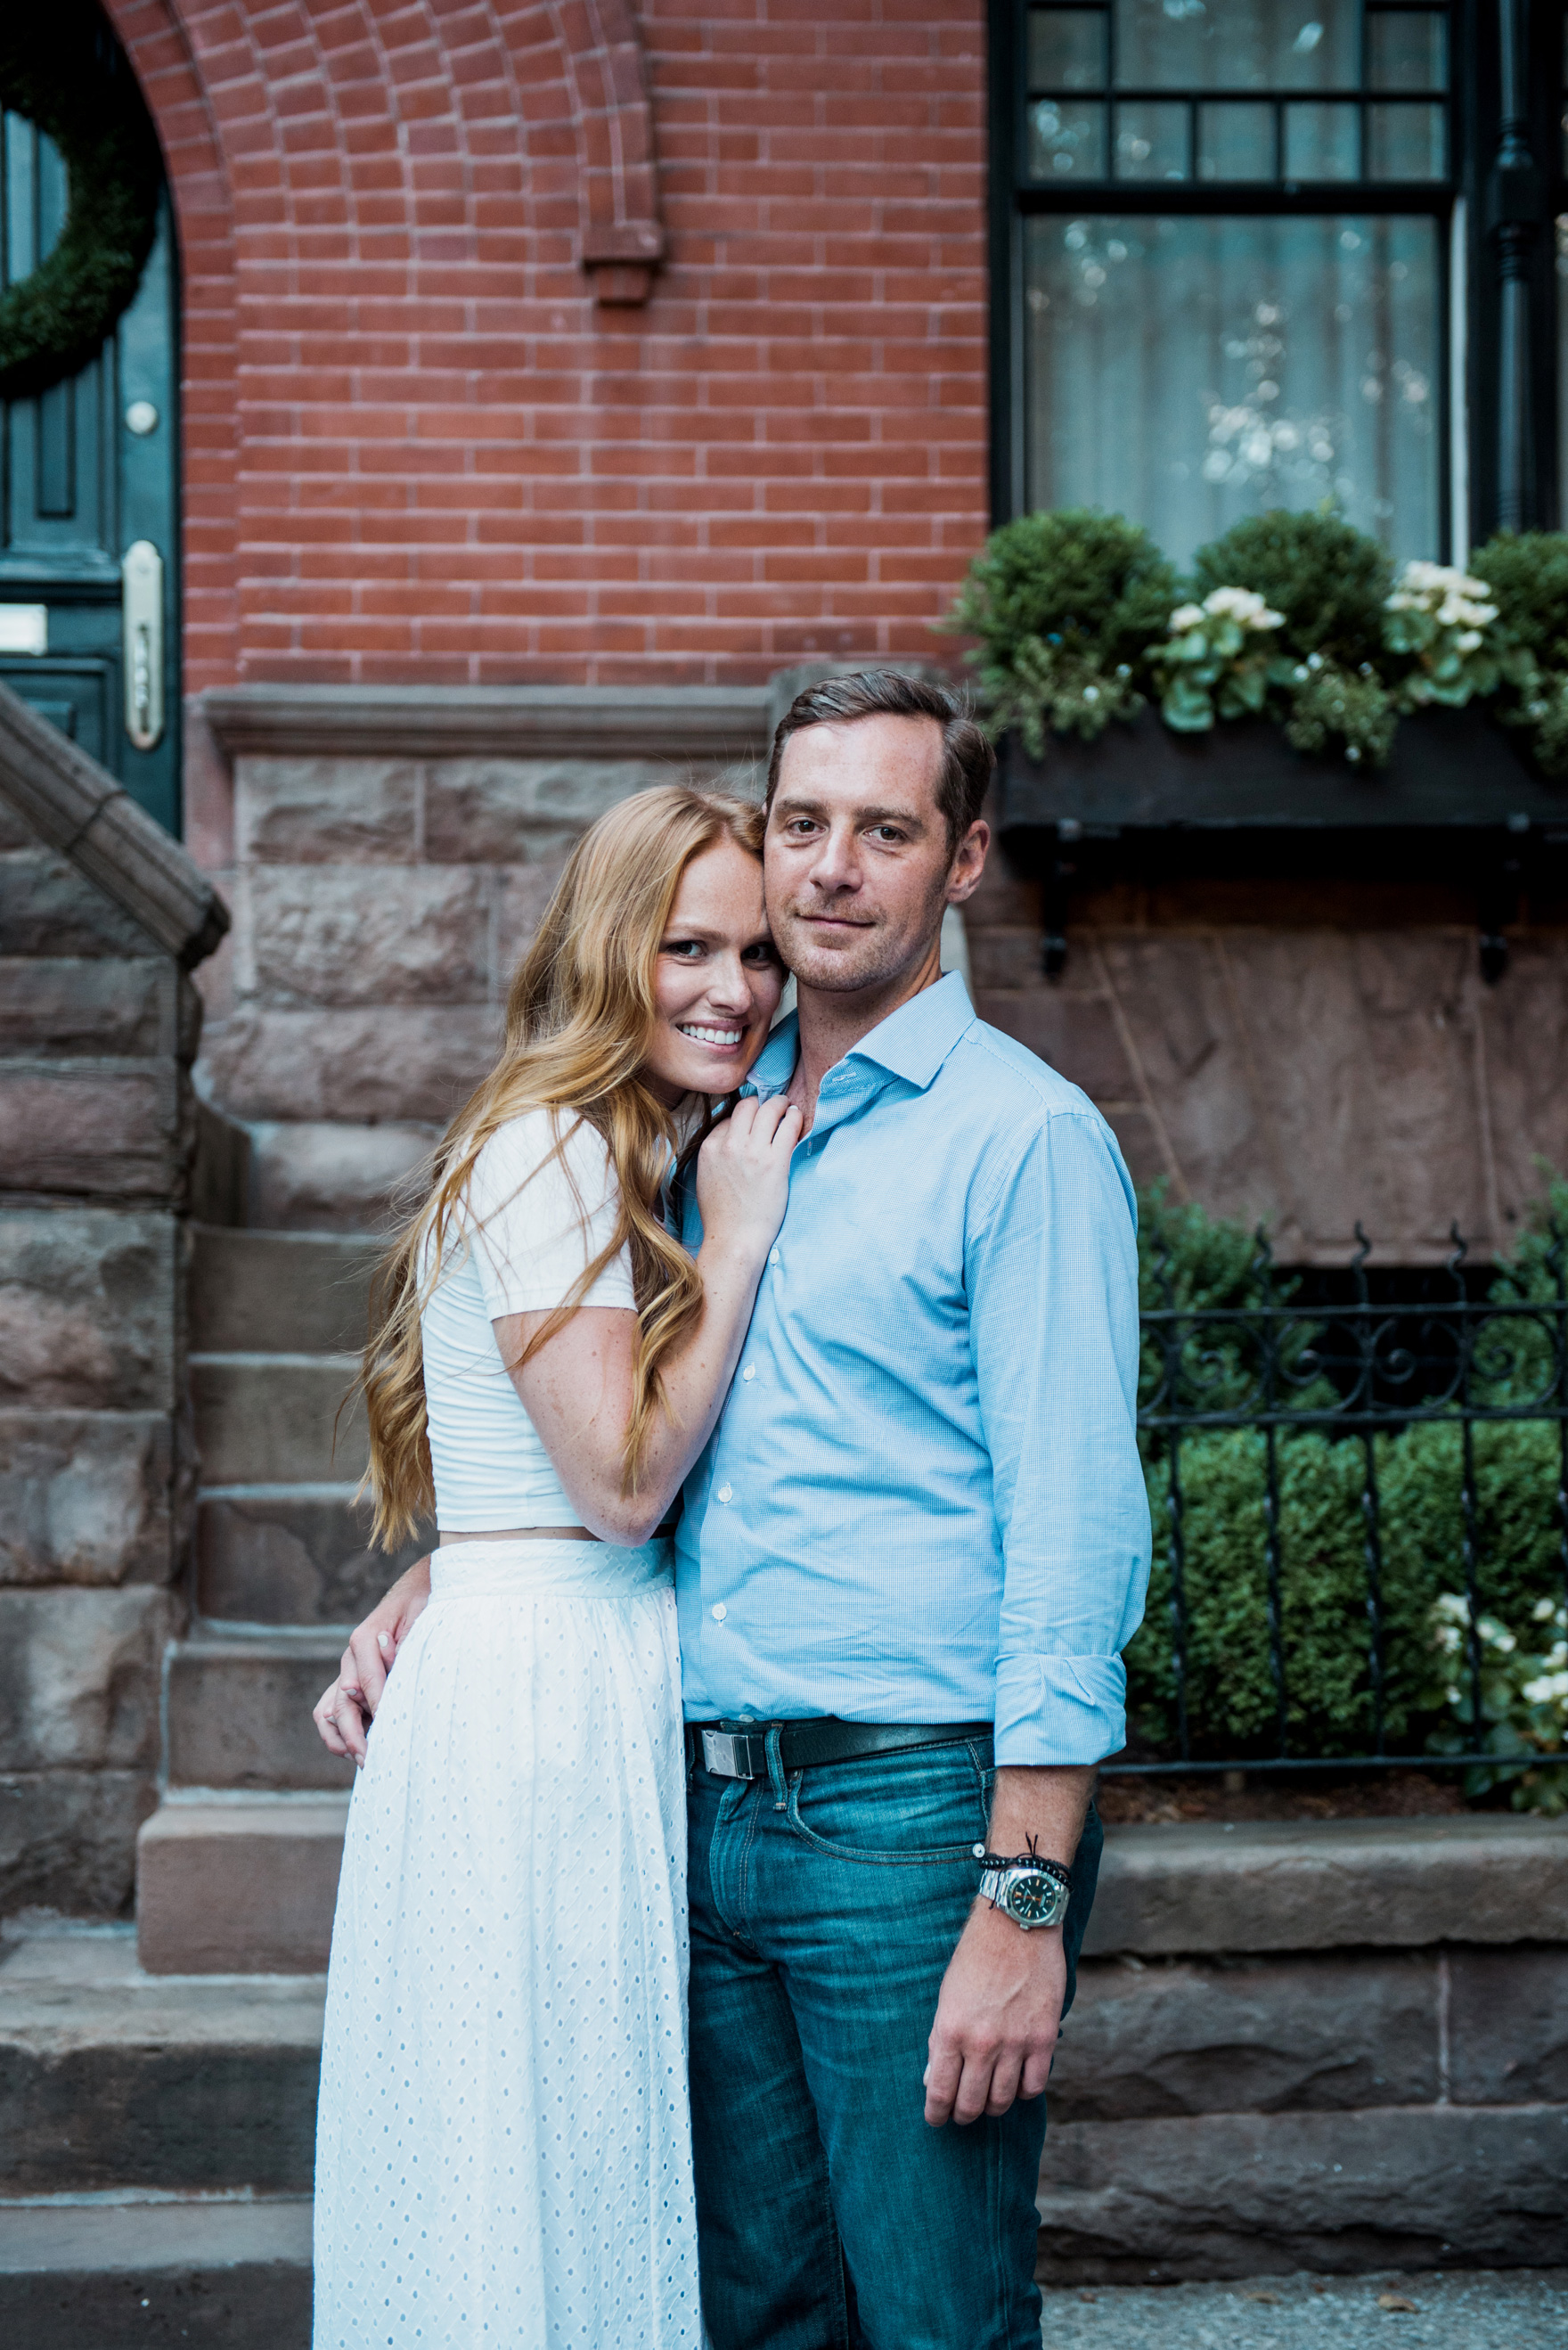 Chris and Erin-Engagement-Photos-NYC-Brooklyn-by Christina Lilly Photography0025